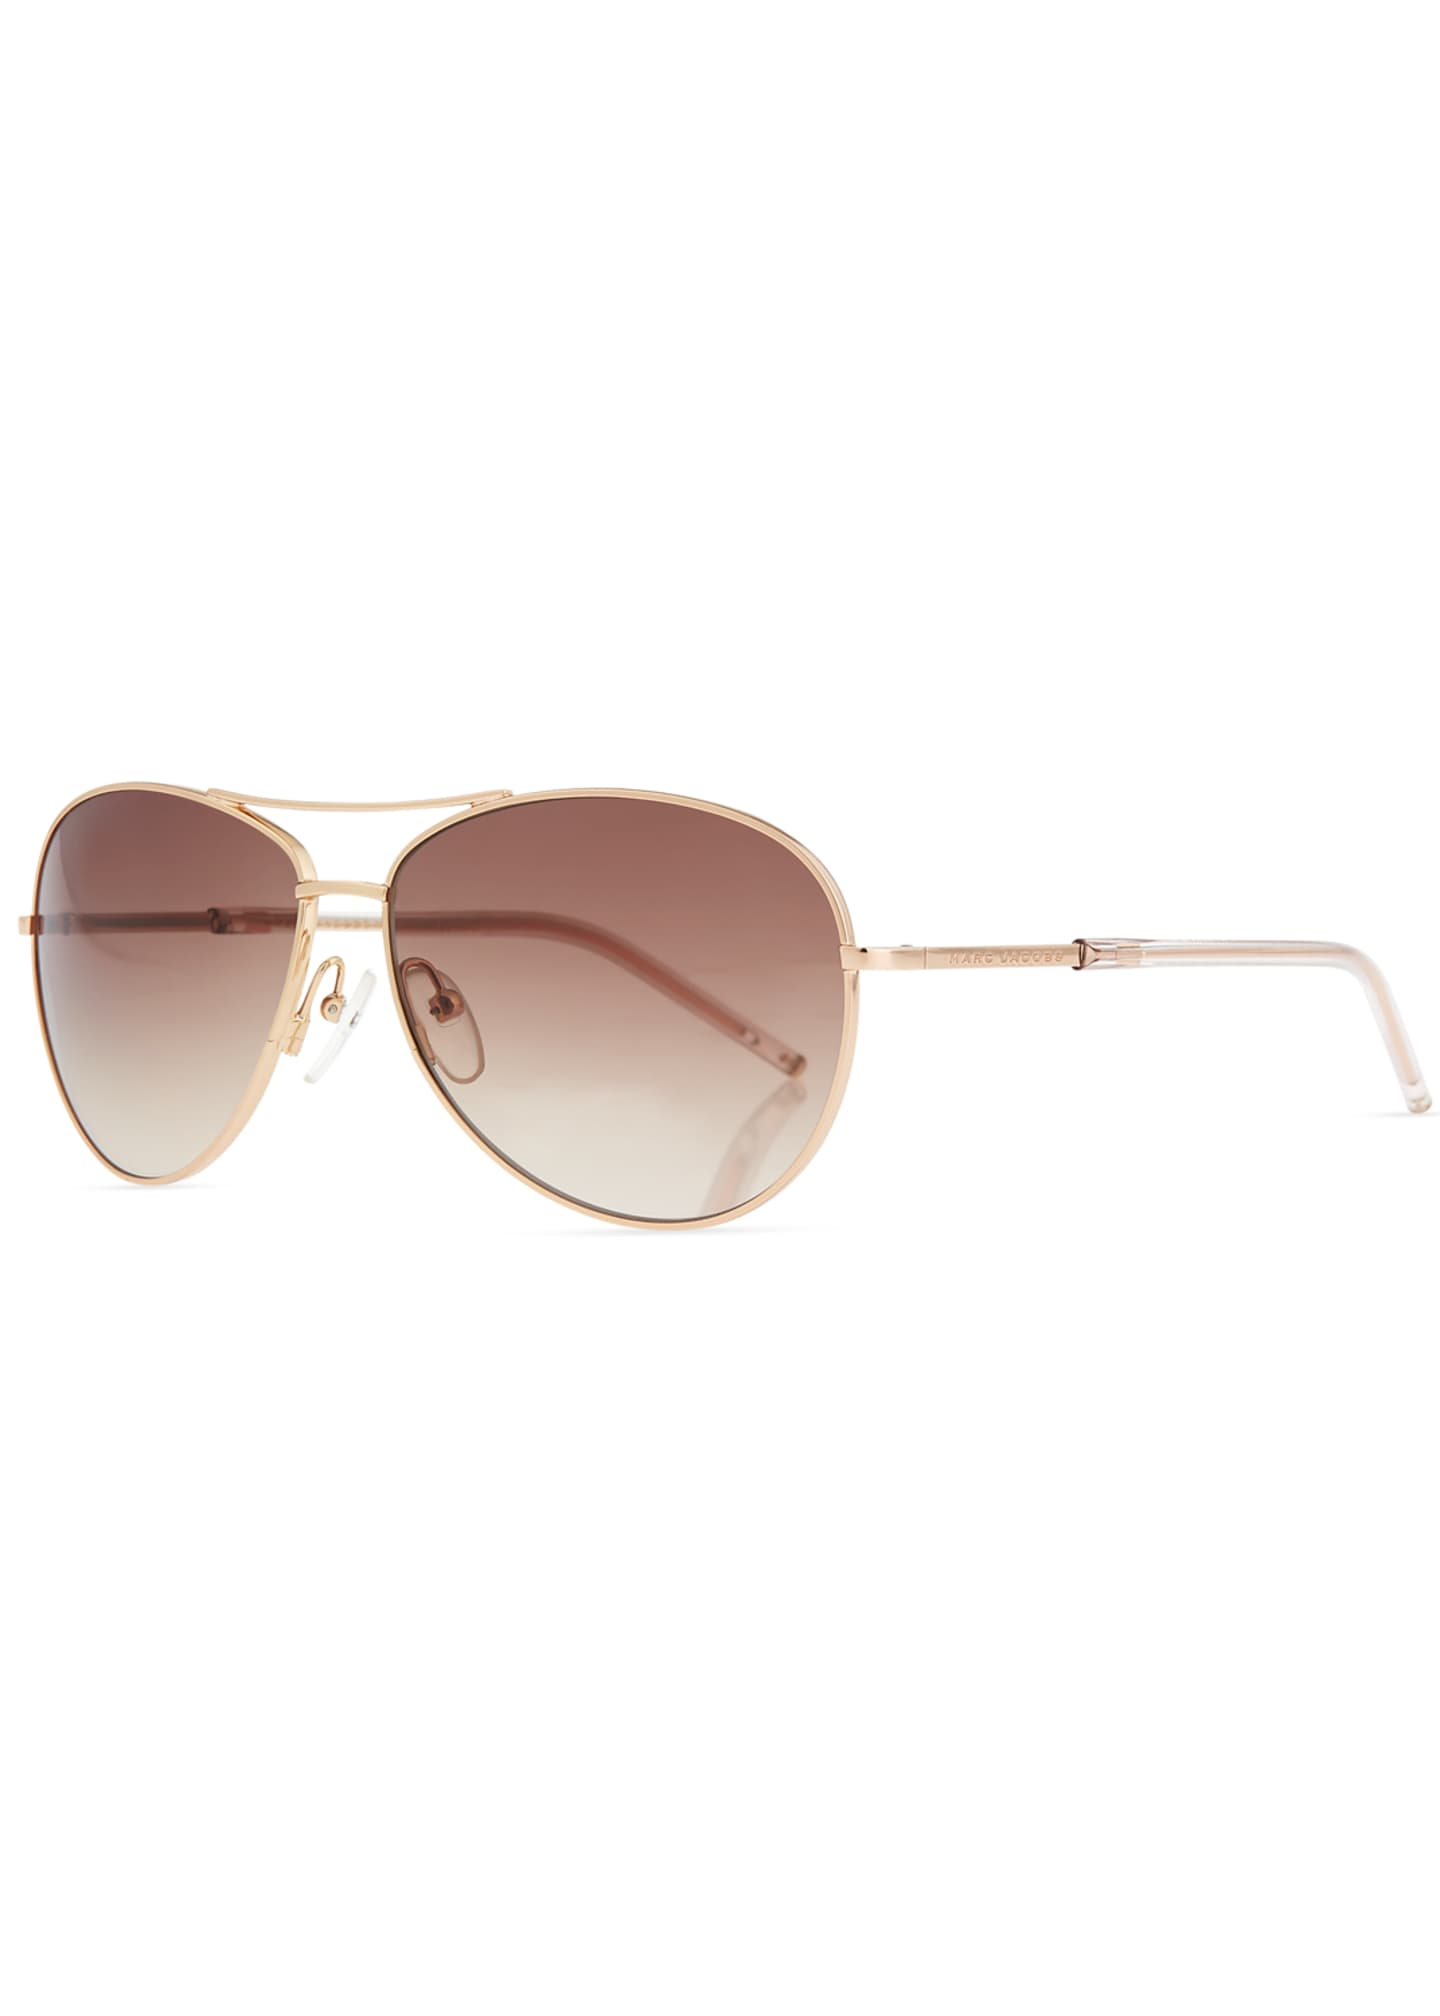 The Marc Jacobs Metal Curved-Brow Aviator Sunglasses